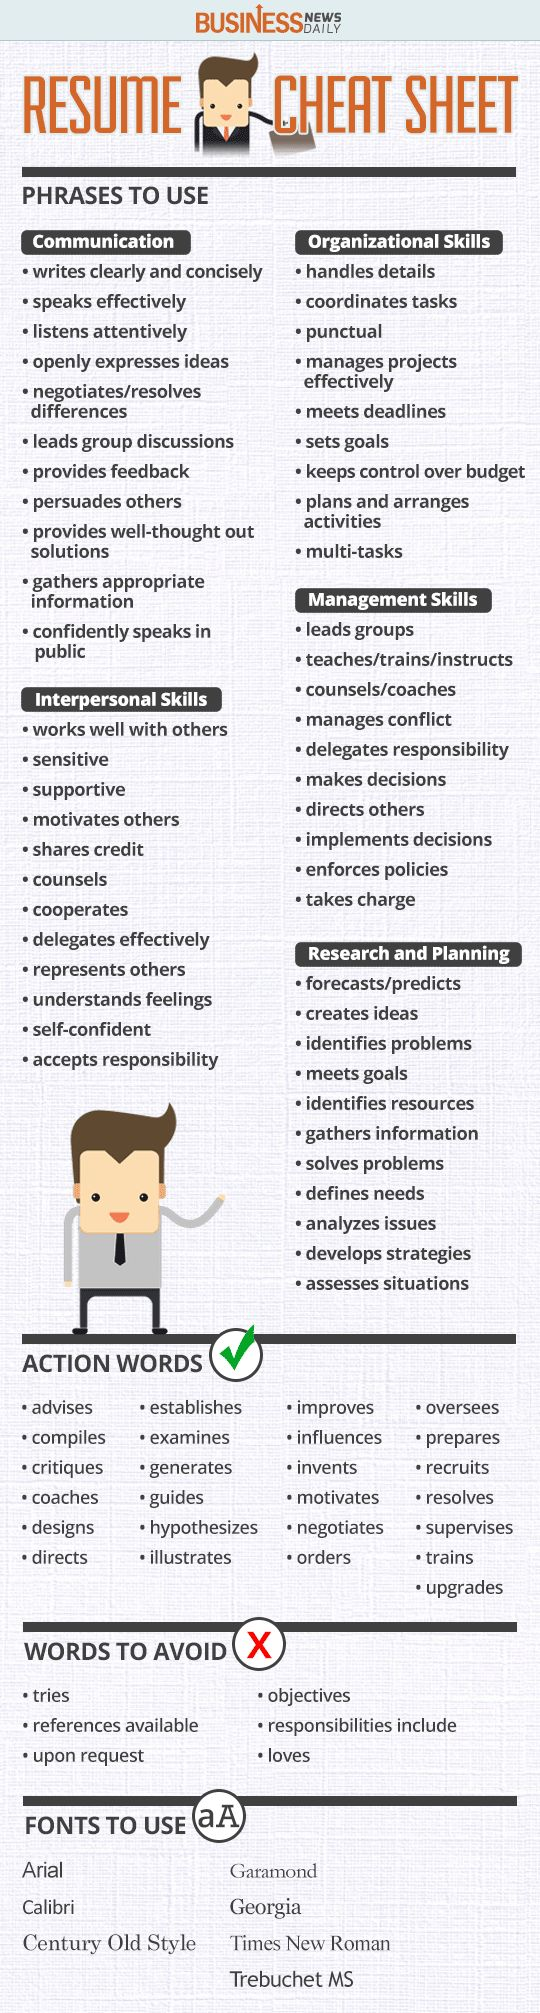 Opposenewapstandardsus  Gorgeous  Ideas About Resume On Pinterest  Cv Format Resume Cv And  With Excellent Resume Cheat Sheet Infographic Andrews Almost Done With A Complete Unit On Employment Which With Easy On The Eye Sociology Resume Also Resume Templates Samples In Addition Scholarship Resume Format And Skills For A Resume Examples As Well As General Manager Resume Sample Additionally Help Desk Resume Examples From Pinterestcom With Opposenewapstandardsus  Excellent  Ideas About Resume On Pinterest  Cv Format Resume Cv And  With Easy On The Eye Resume Cheat Sheet Infographic Andrews Almost Done With A Complete Unit On Employment Which And Gorgeous Sociology Resume Also Resume Templates Samples In Addition Scholarship Resume Format From Pinterestcom